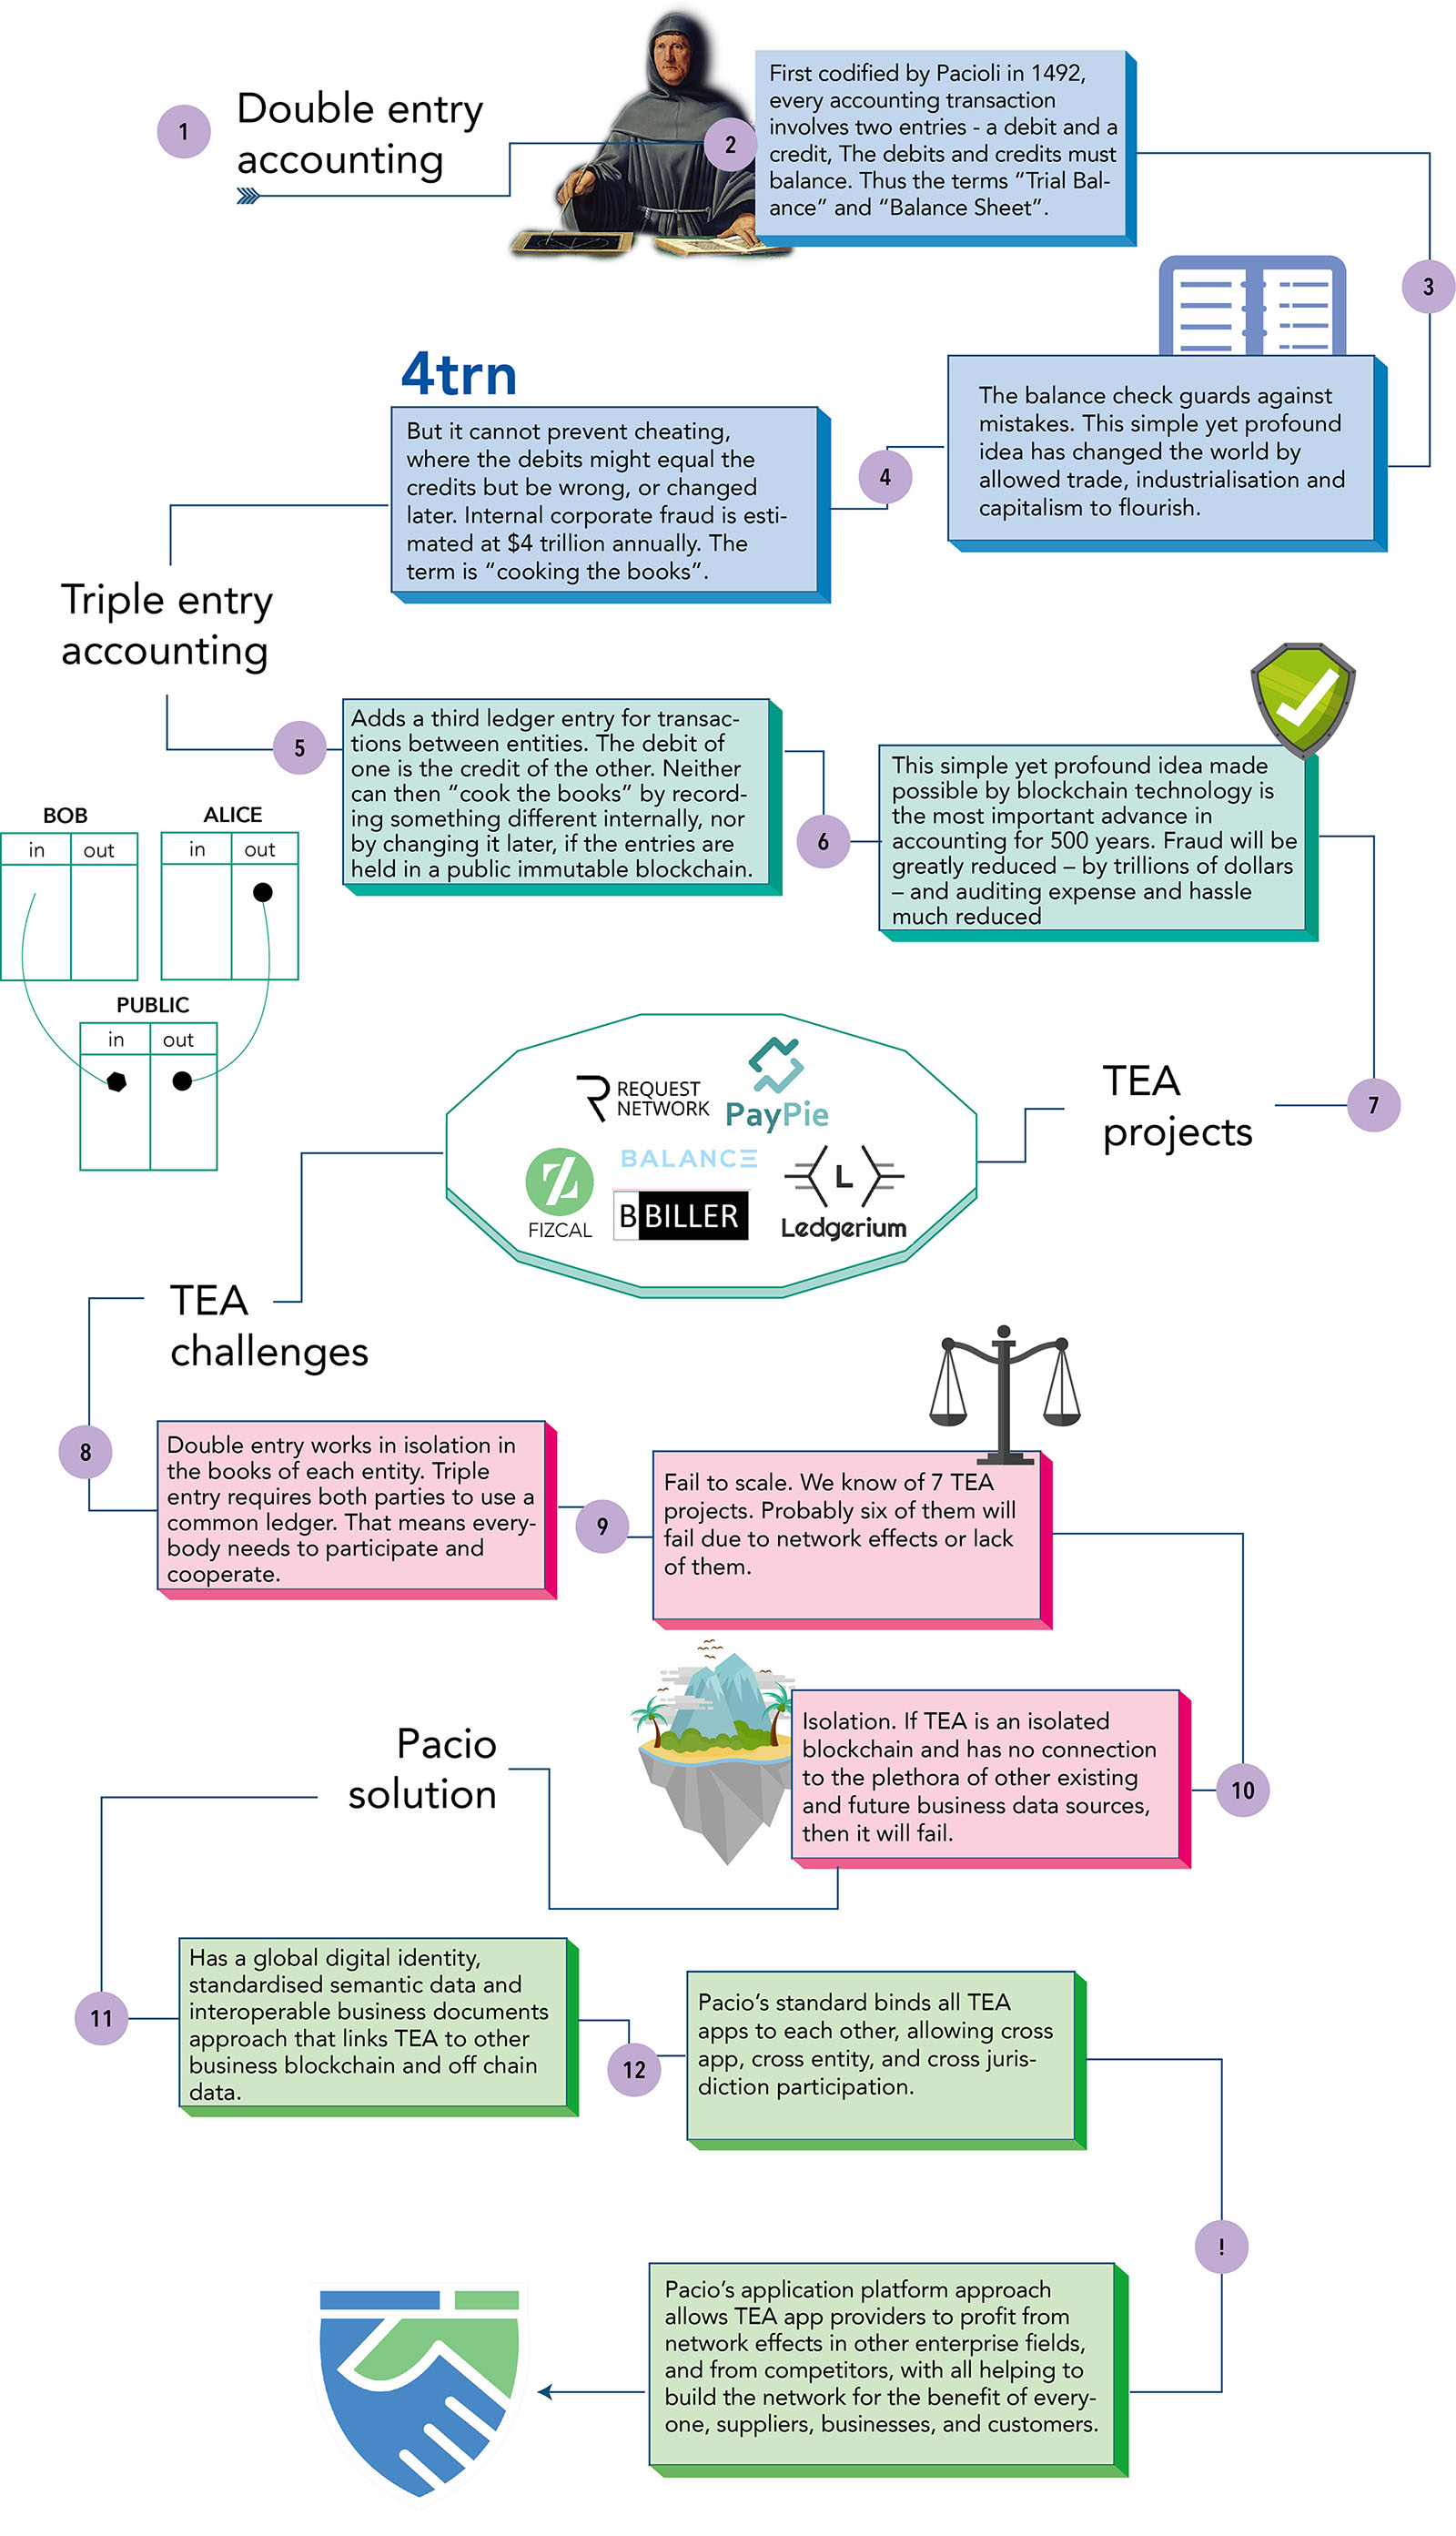 Has a global digital identity, standardised semantic data and interoperable business documents approach that links TEA to other business blockchain and off chain data. Pacio's standard binds all TEA apps to each other, allowing cross app, cross entity, and cross jurisdiction participation. Pacio's application platform approach allows TEA app providers to profit from network effects in other enterprise fields, and from competitors, with all helping to build the network for the benefit of everyone, suppliers, businesses, and customers.